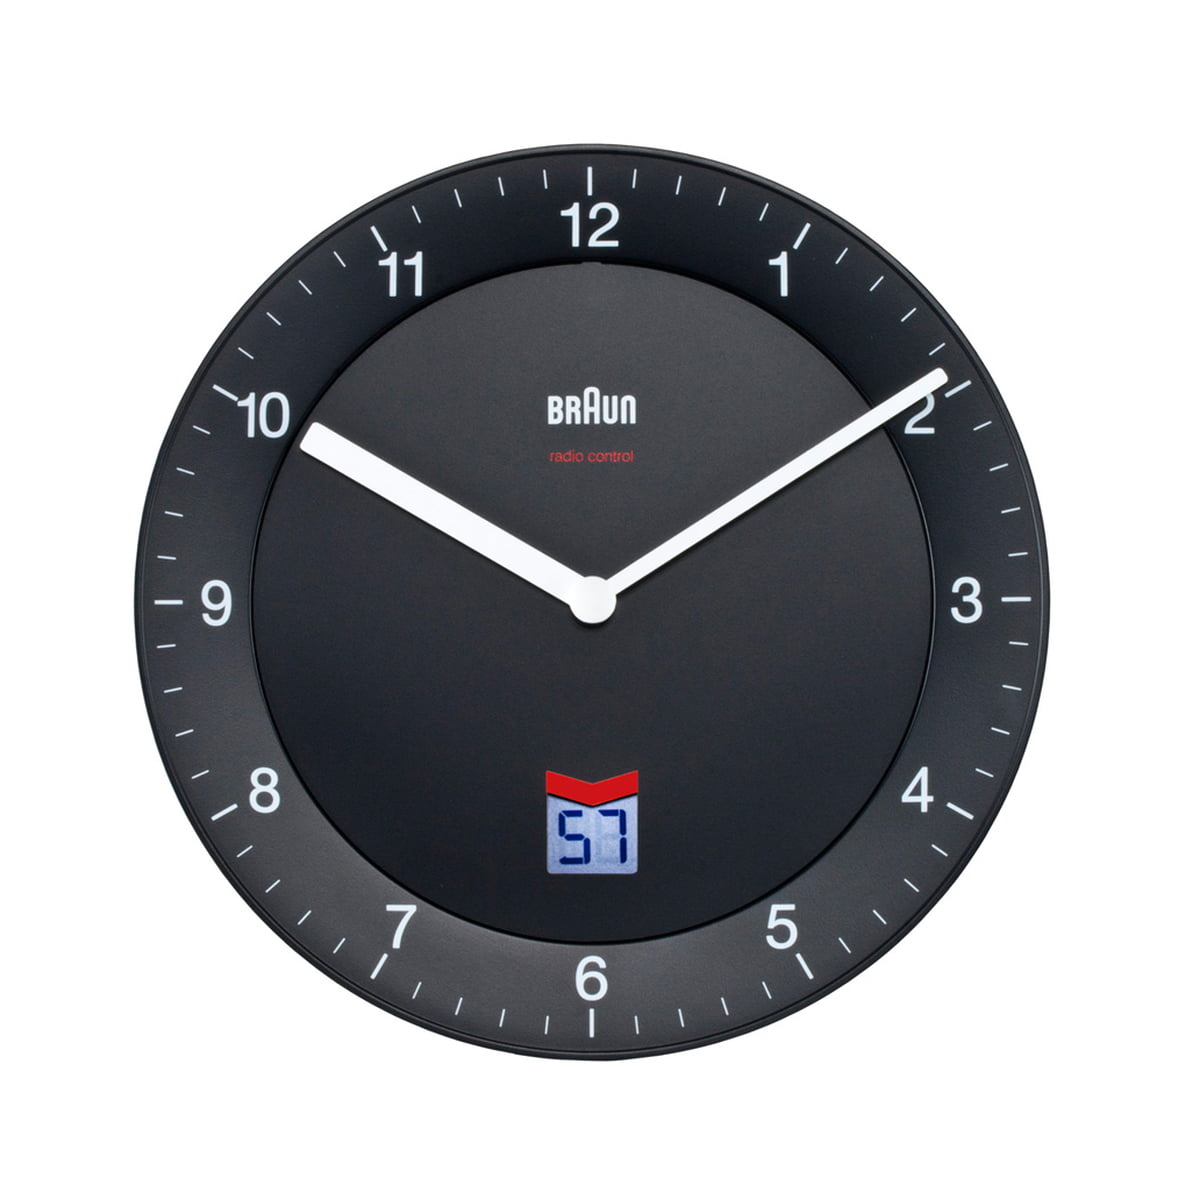 Digital radio controlled wall clock gallery home wall decoration radio controlled wall clock bnc006 braun shop braun analogue radio controlled wall clock bnc006 black amipublicfo amipublicfo Image collections